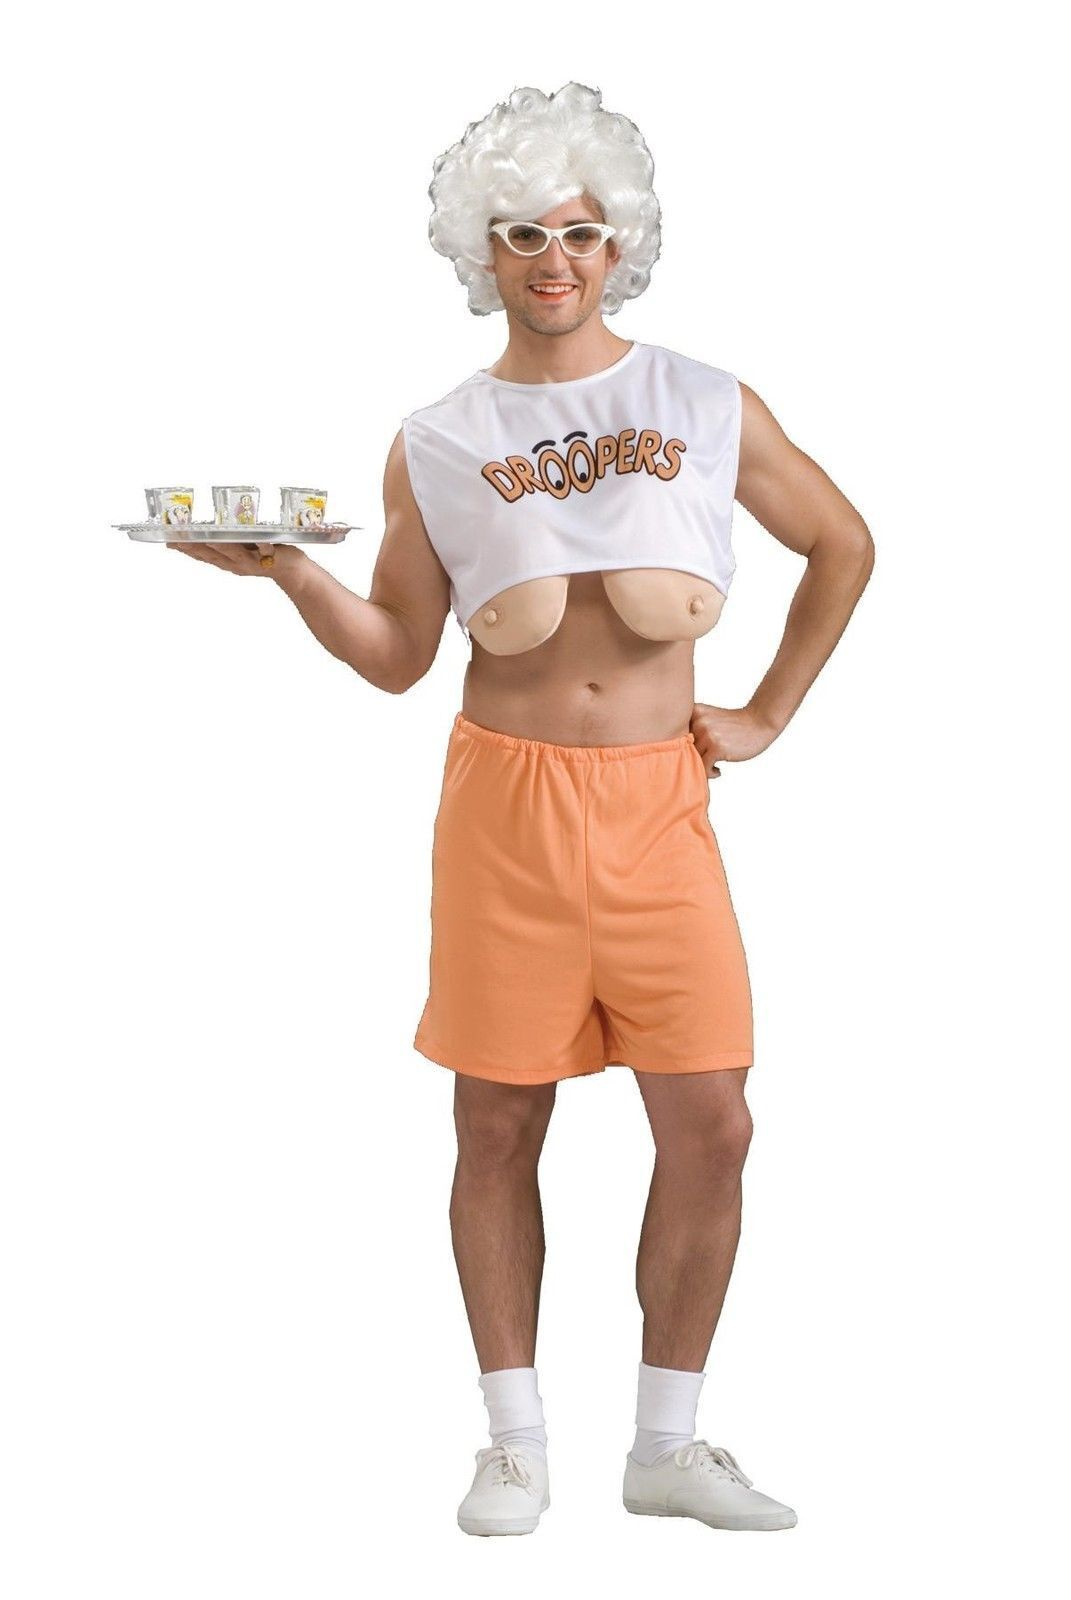 Droopers Funny Hooters Waitress Old Lady Adult Halloween Costume ...